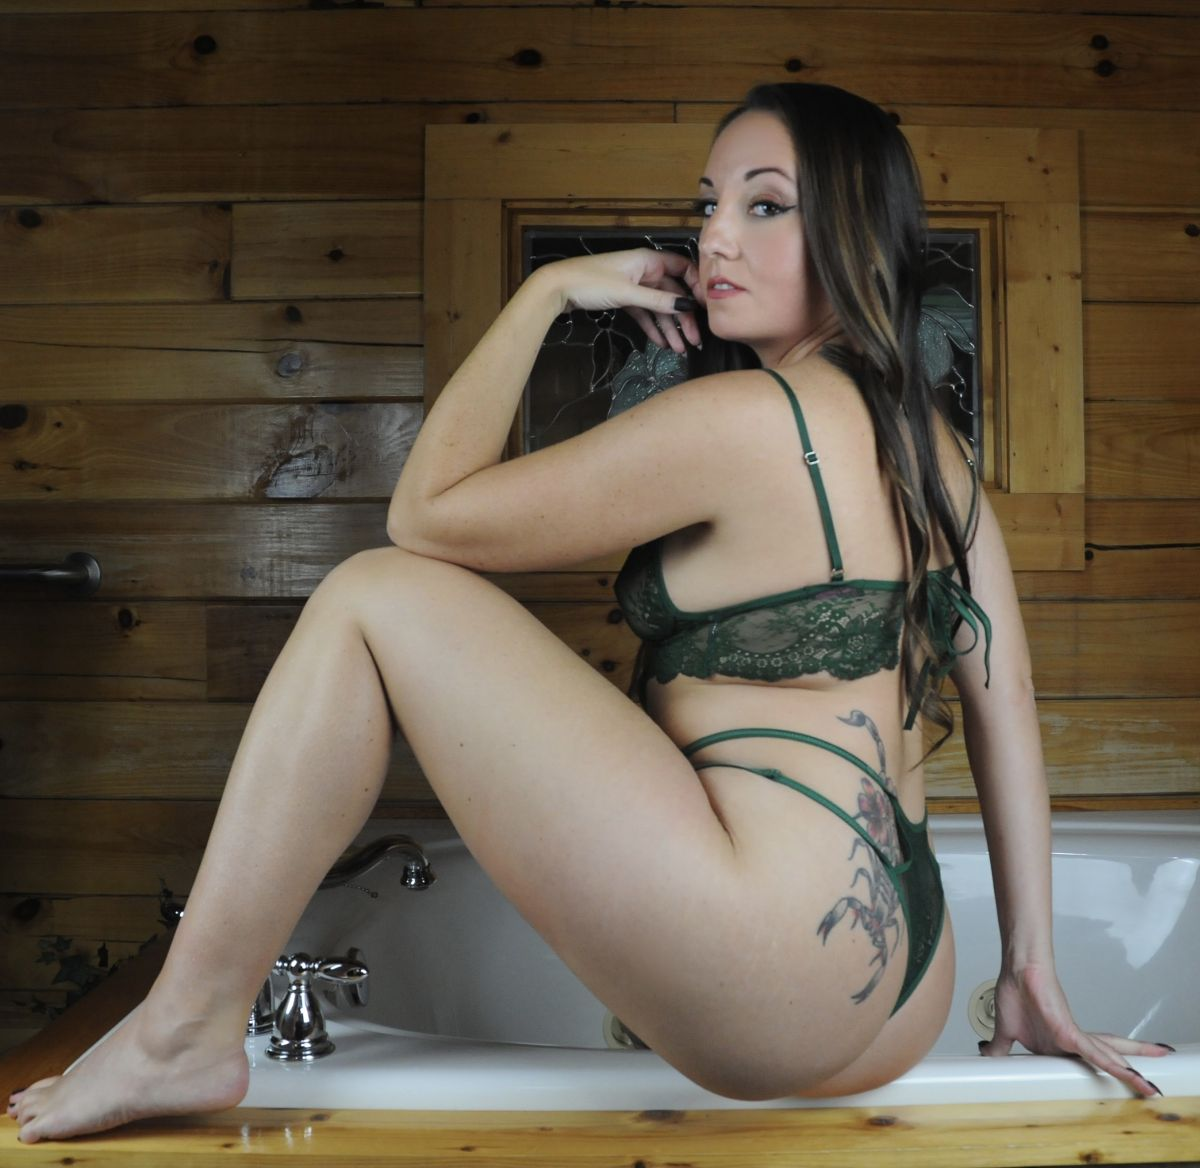 Free Theamynicole onlyfans onlyfans leaked